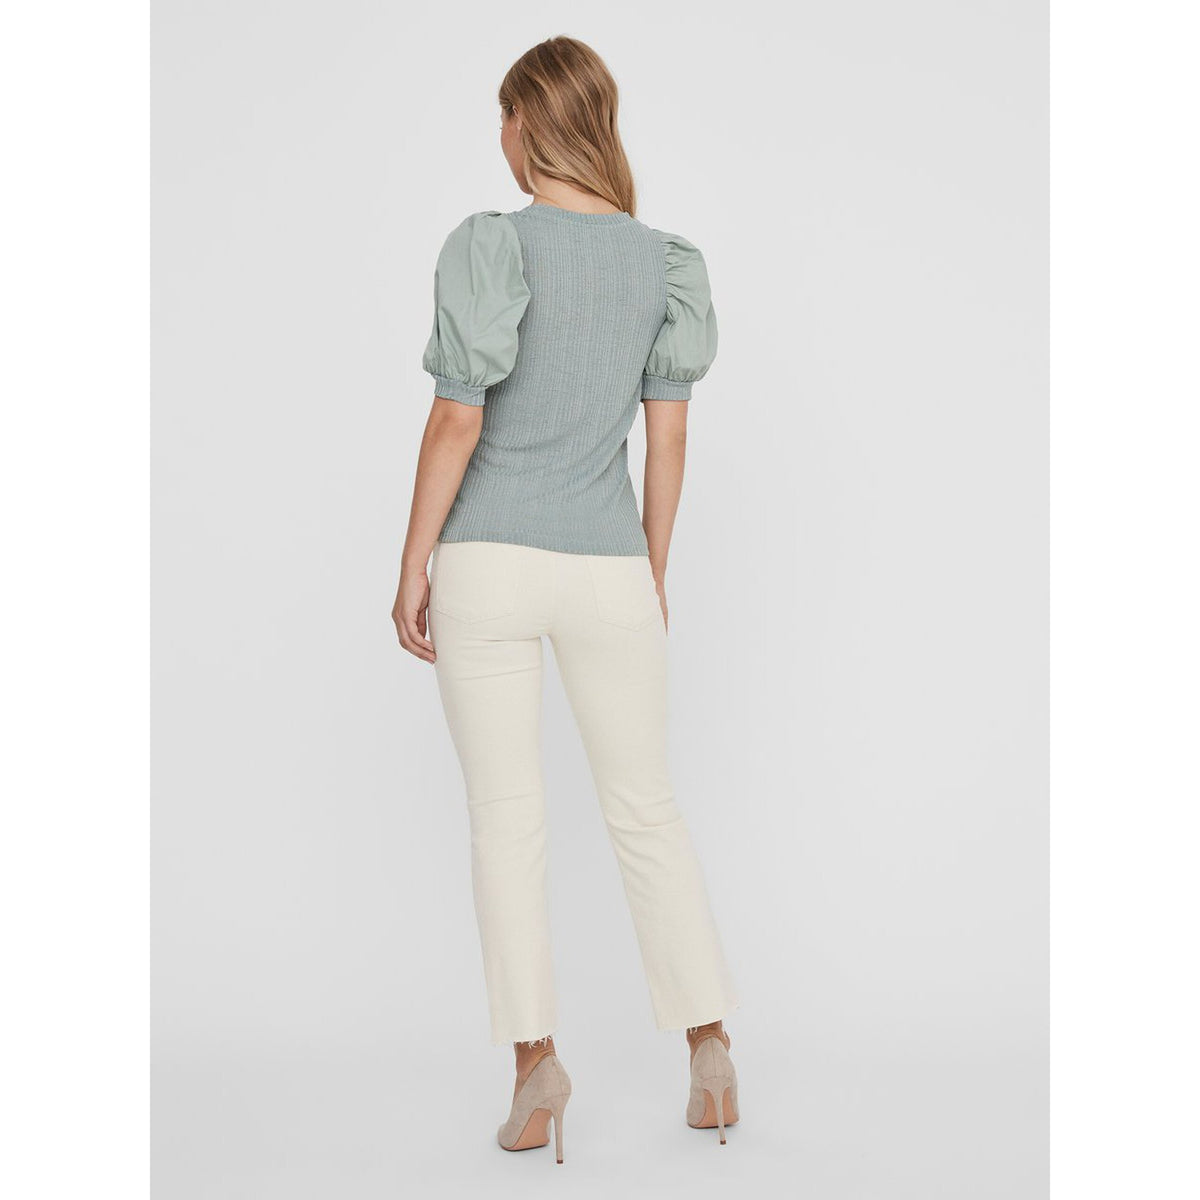 Vero Moda 2 4 Puff Sleeved Top Green The Cope